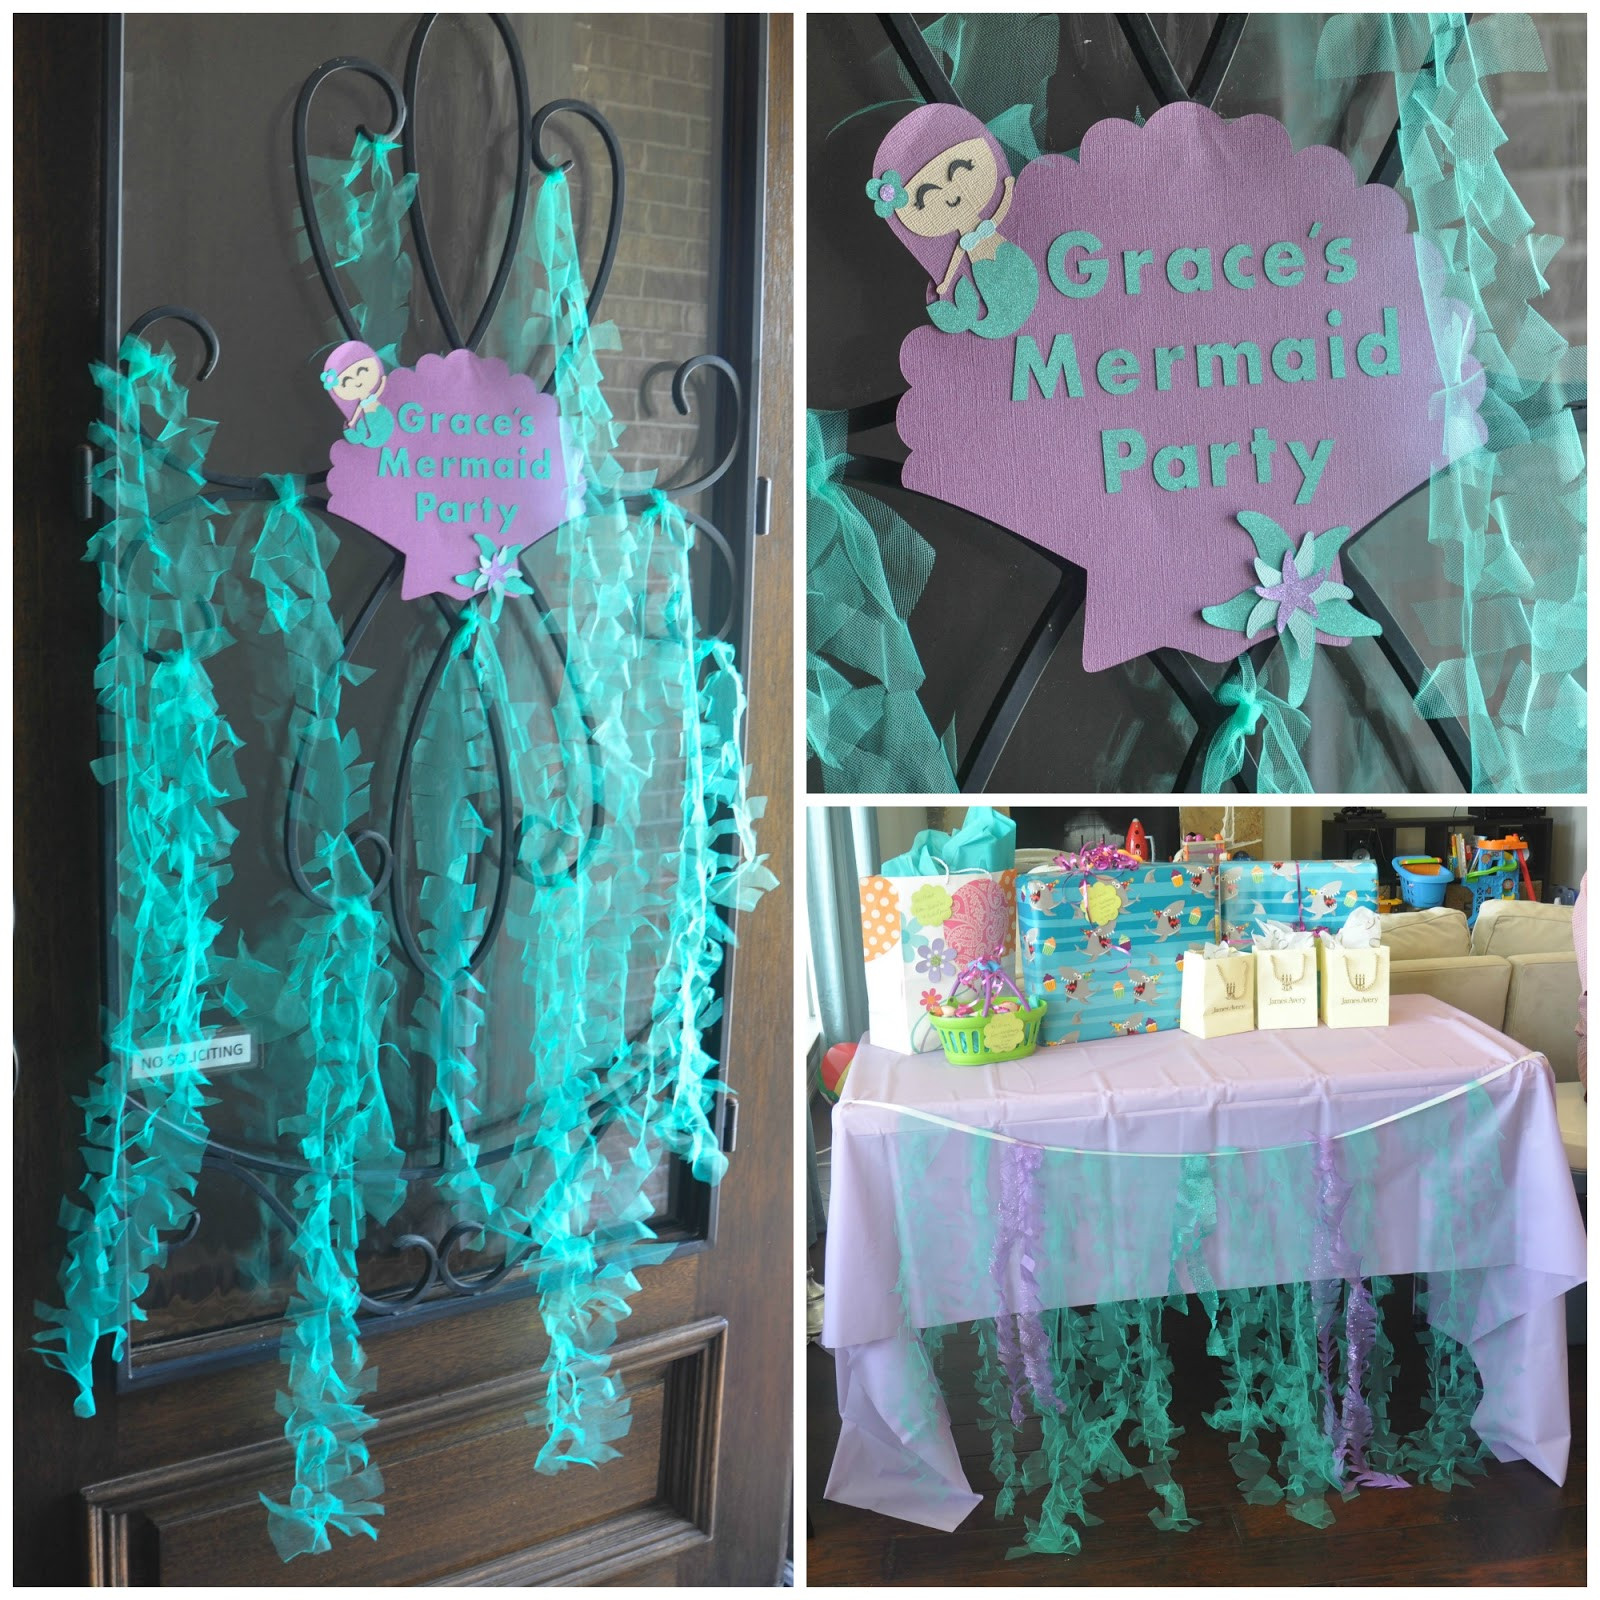 Little Mermaid Party Decoration Ideas  these little loves Sparkly Mermaid Seaweed